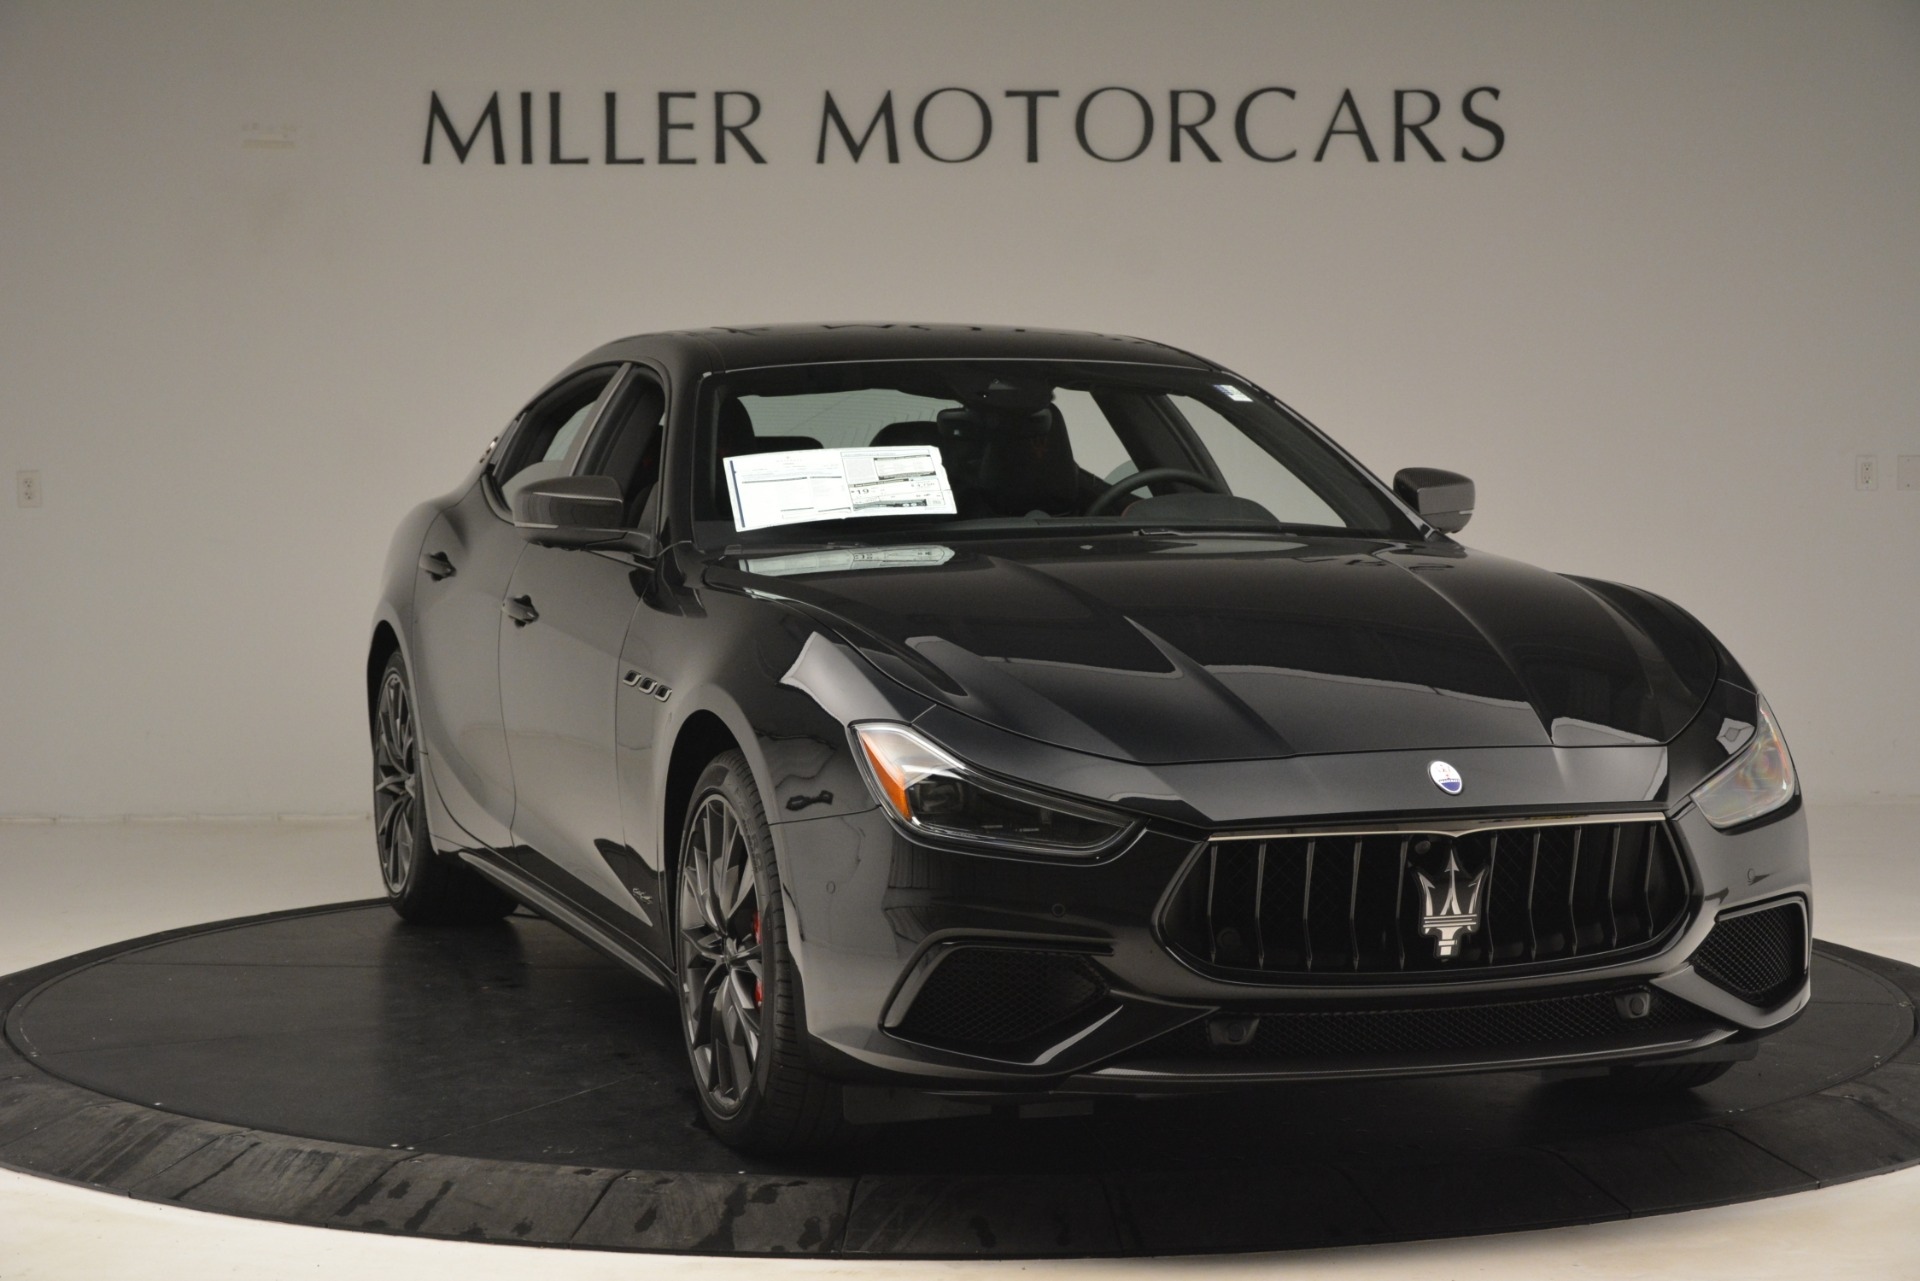 New 2019 Maserati Ghibli S Q4 GranSport For Sale In Westport, CT 2924_p11